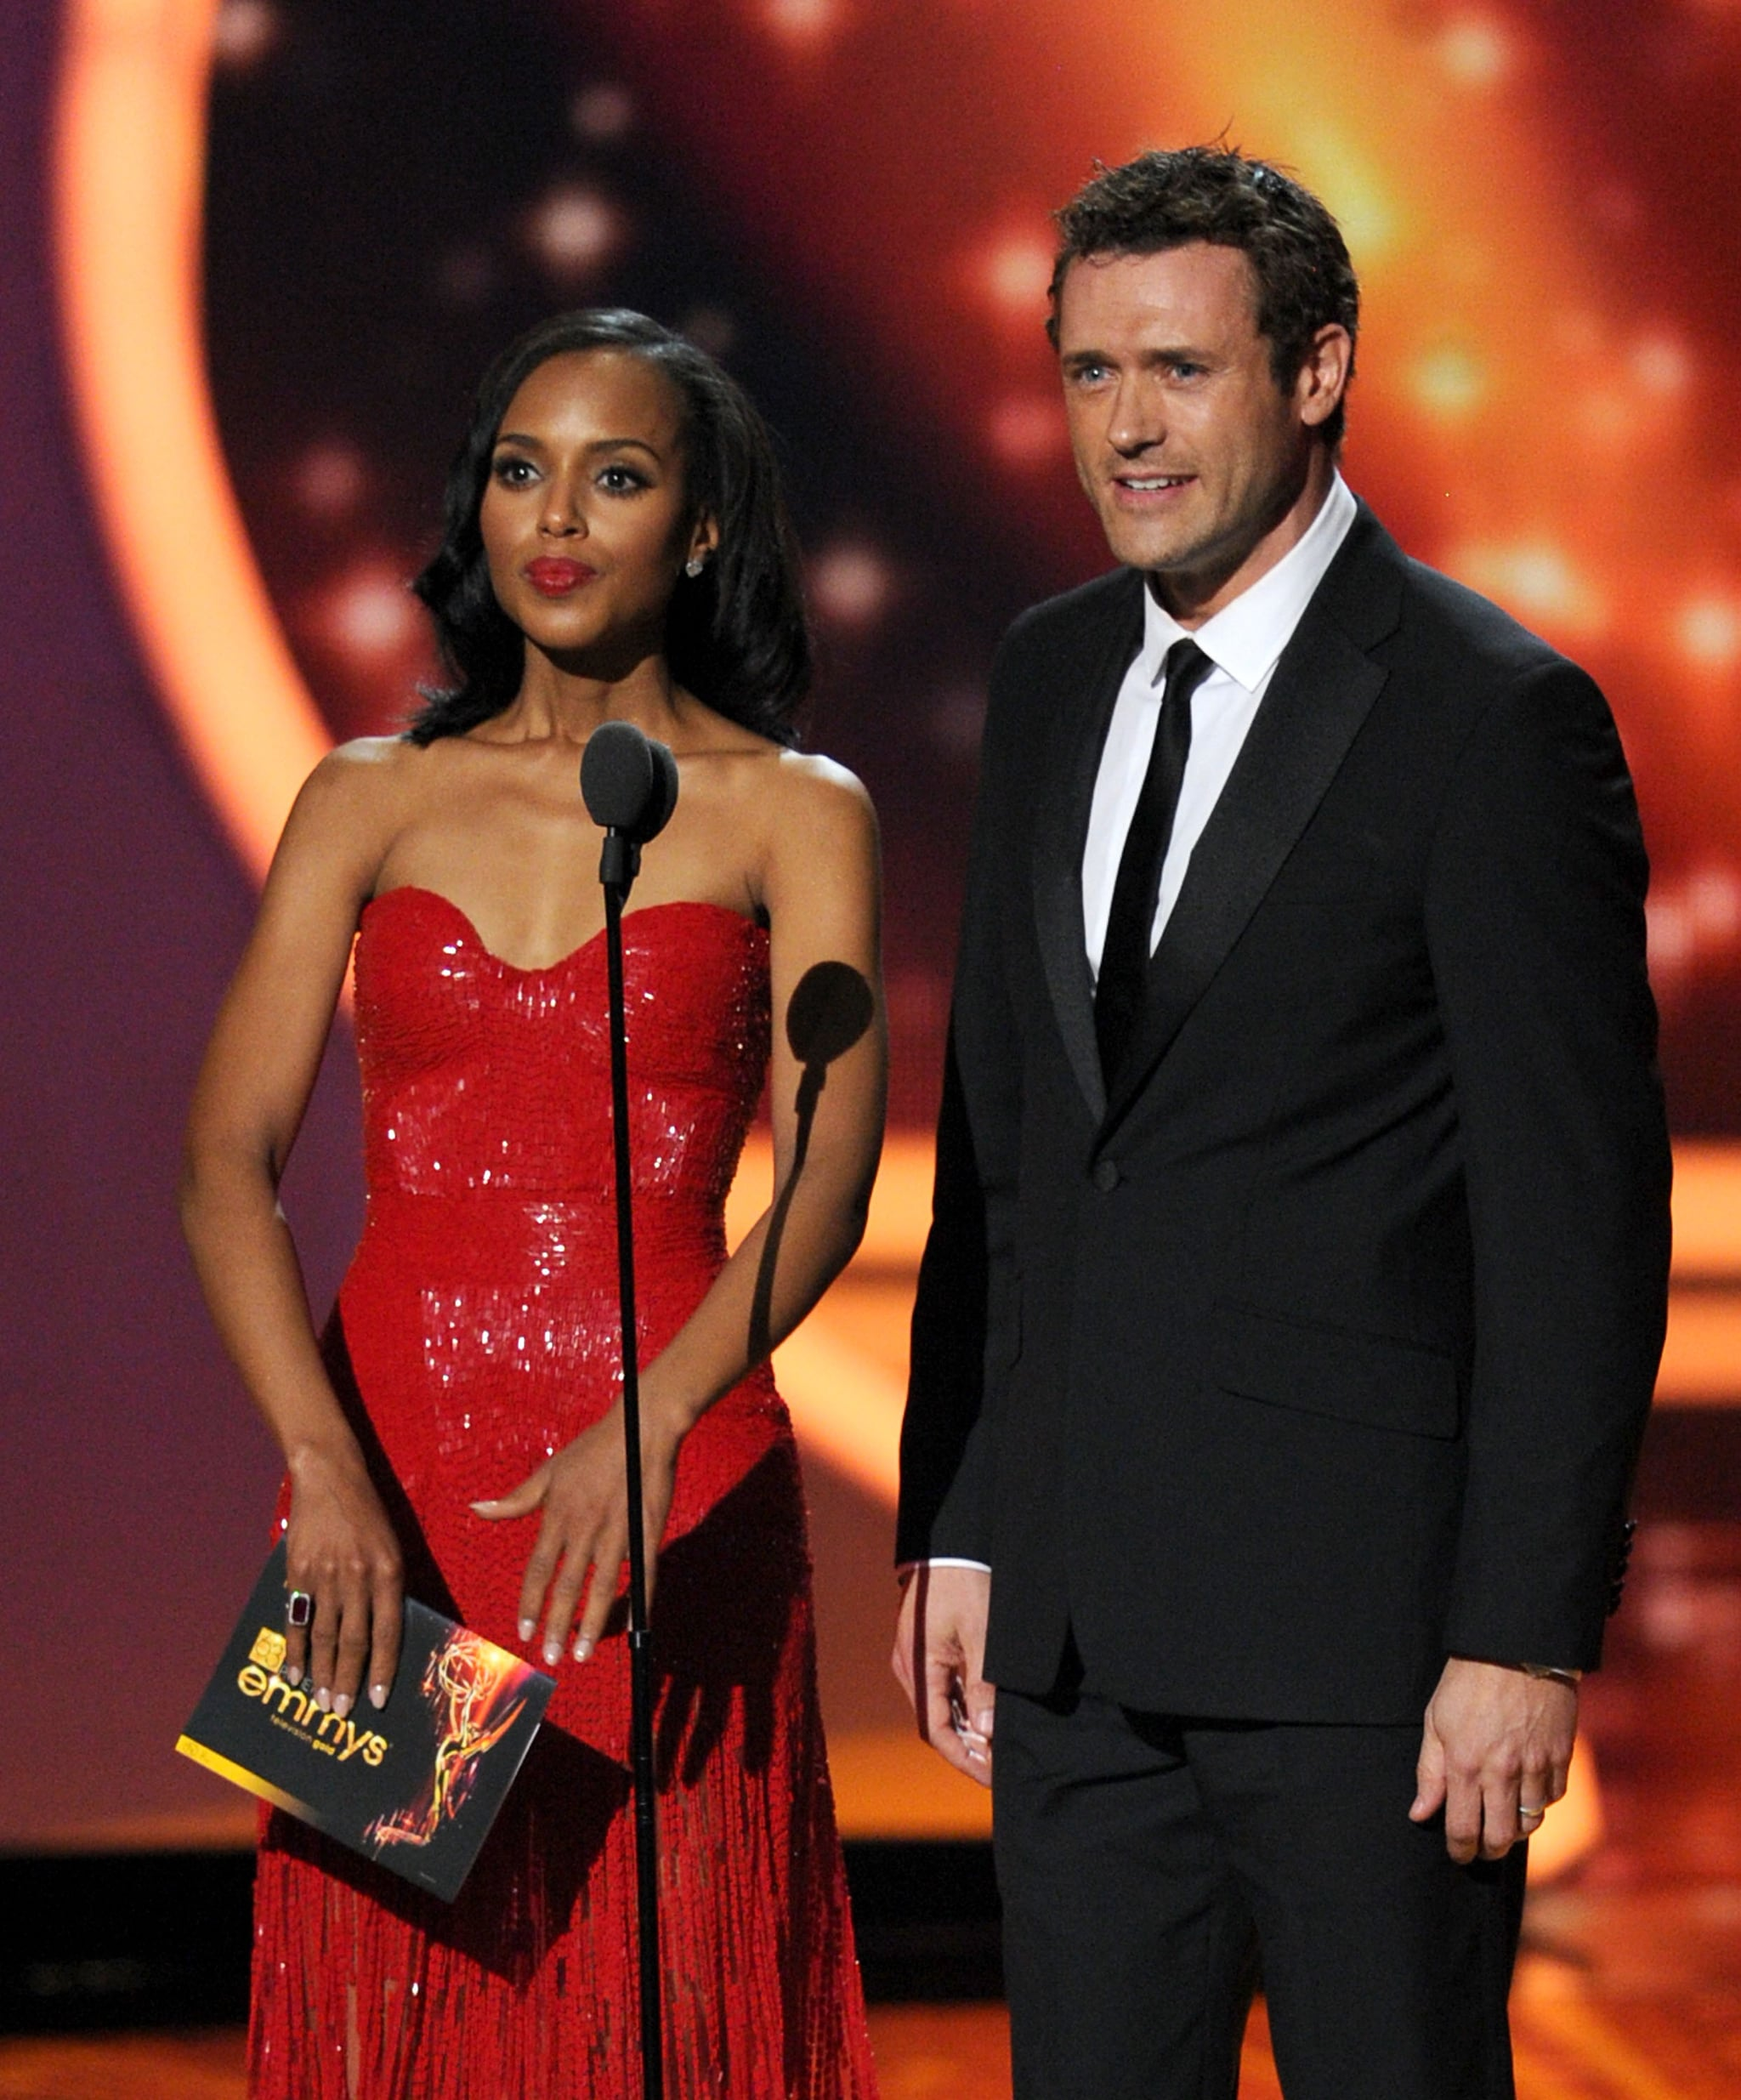 Kerry Washington and Jason O'Mara spoke at the 2011 Emmy Awards.